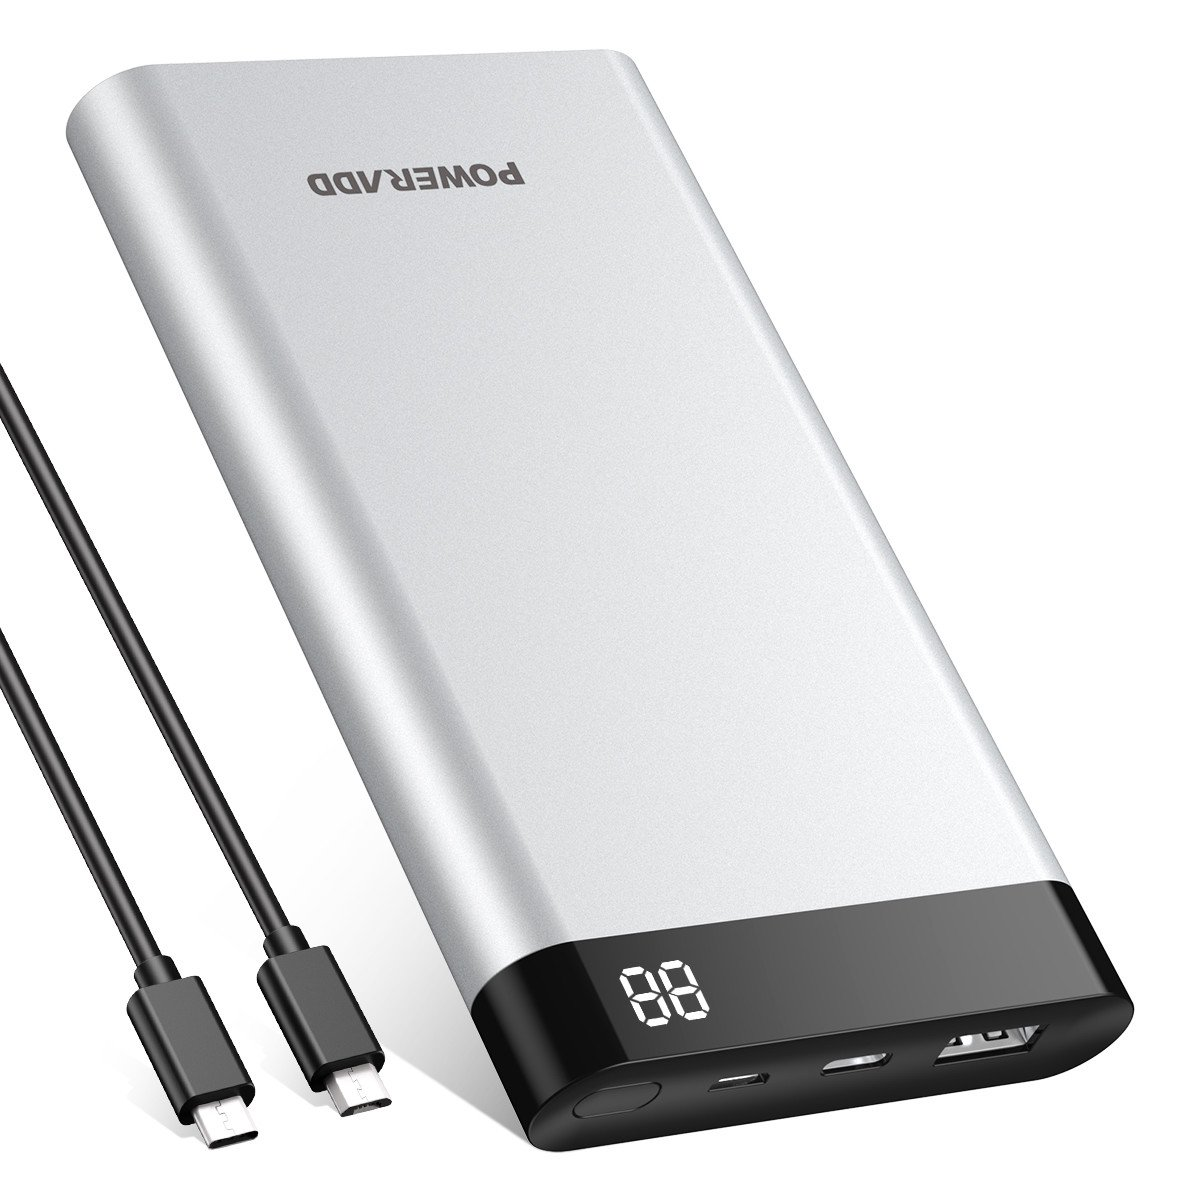 Poweradd Virgo I 10000mAh Portable Universal External Power Bank